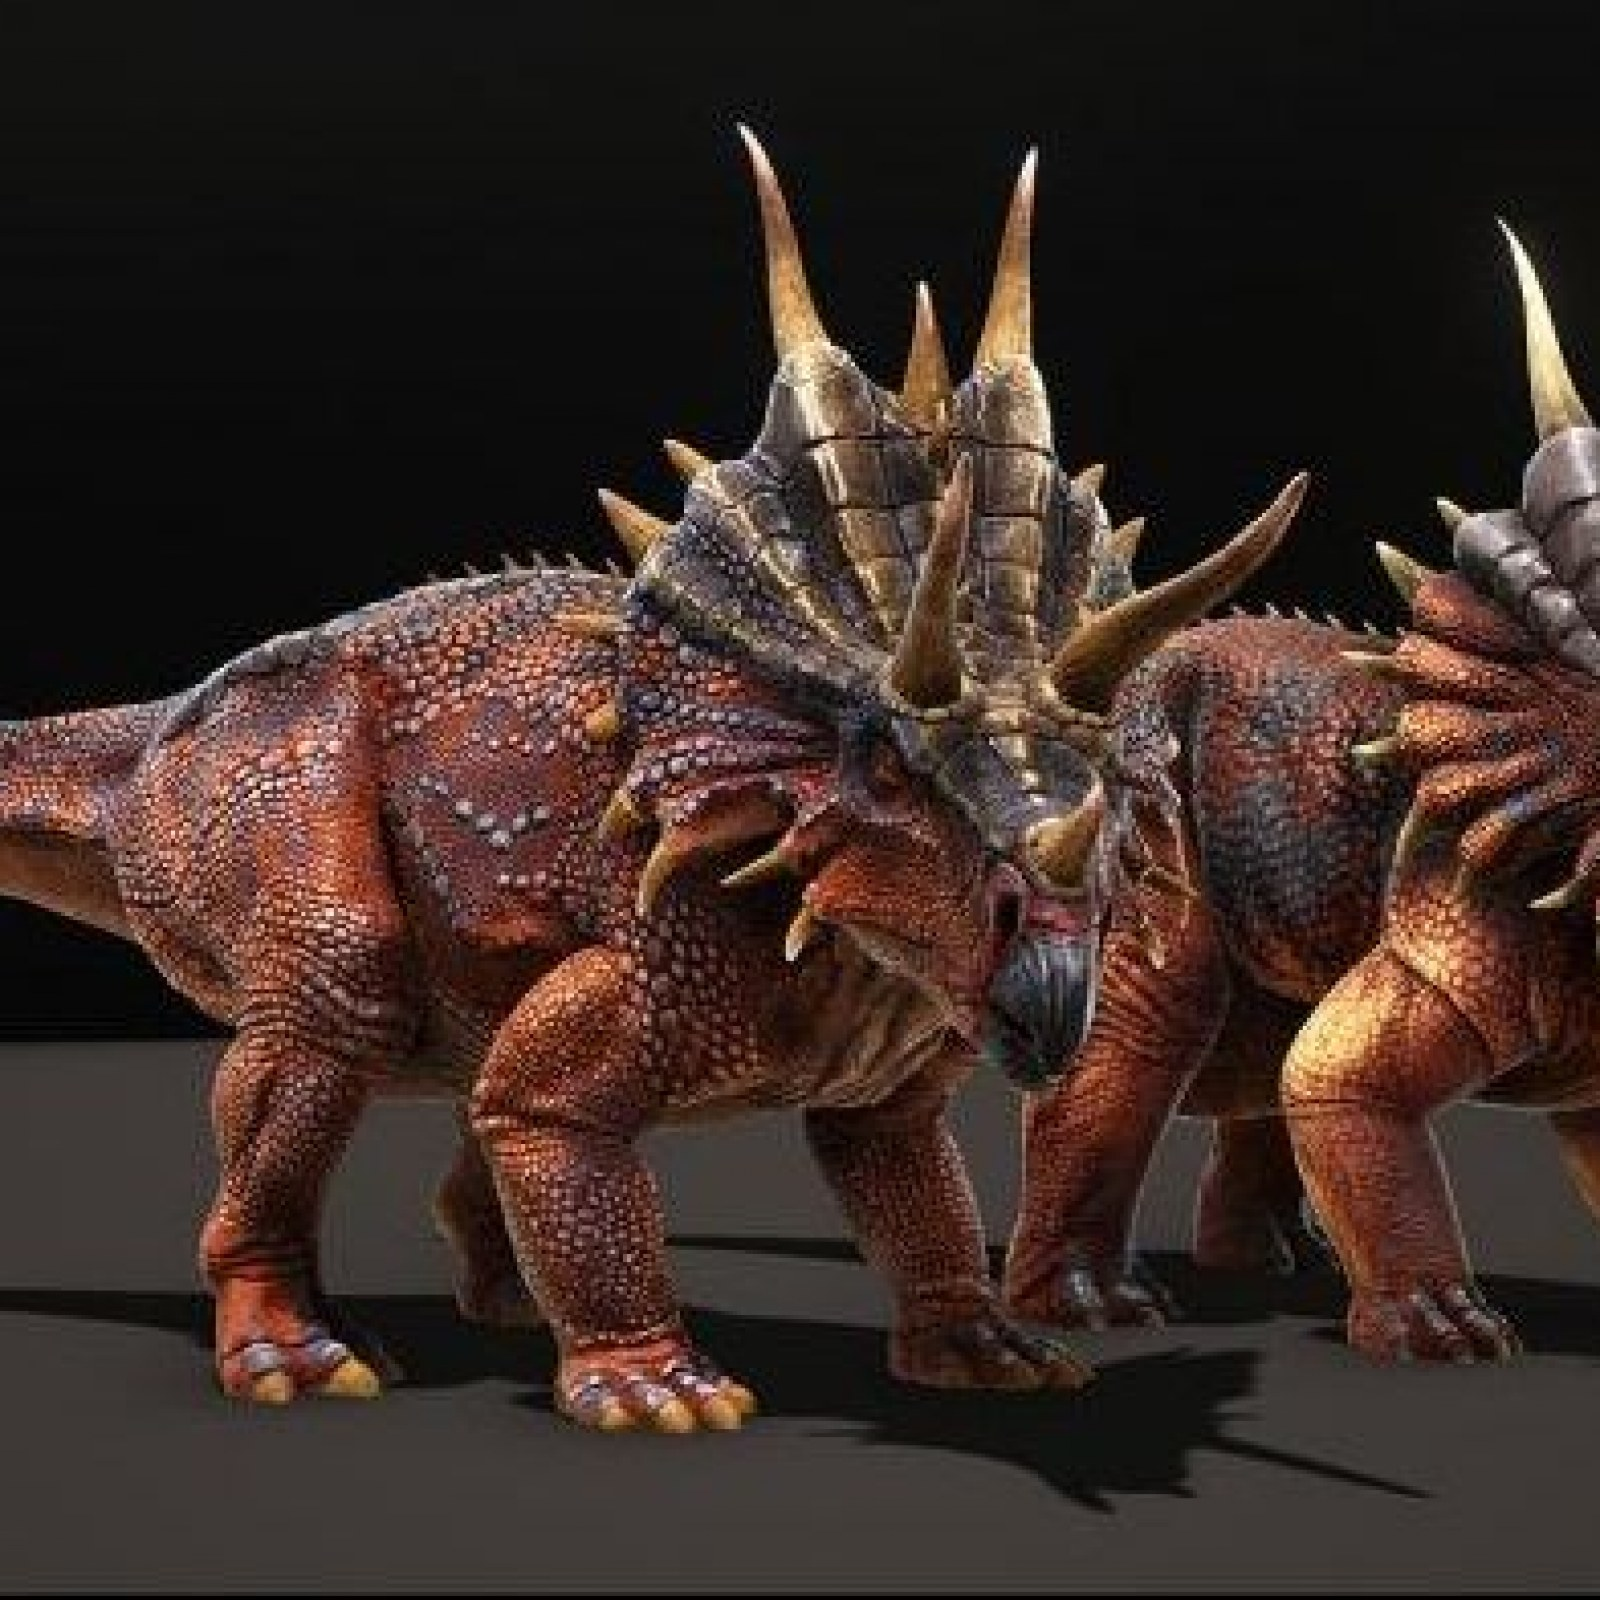 ARK: Survival Evolved' Gets Small PC Update Ahead of Dino TLC Release